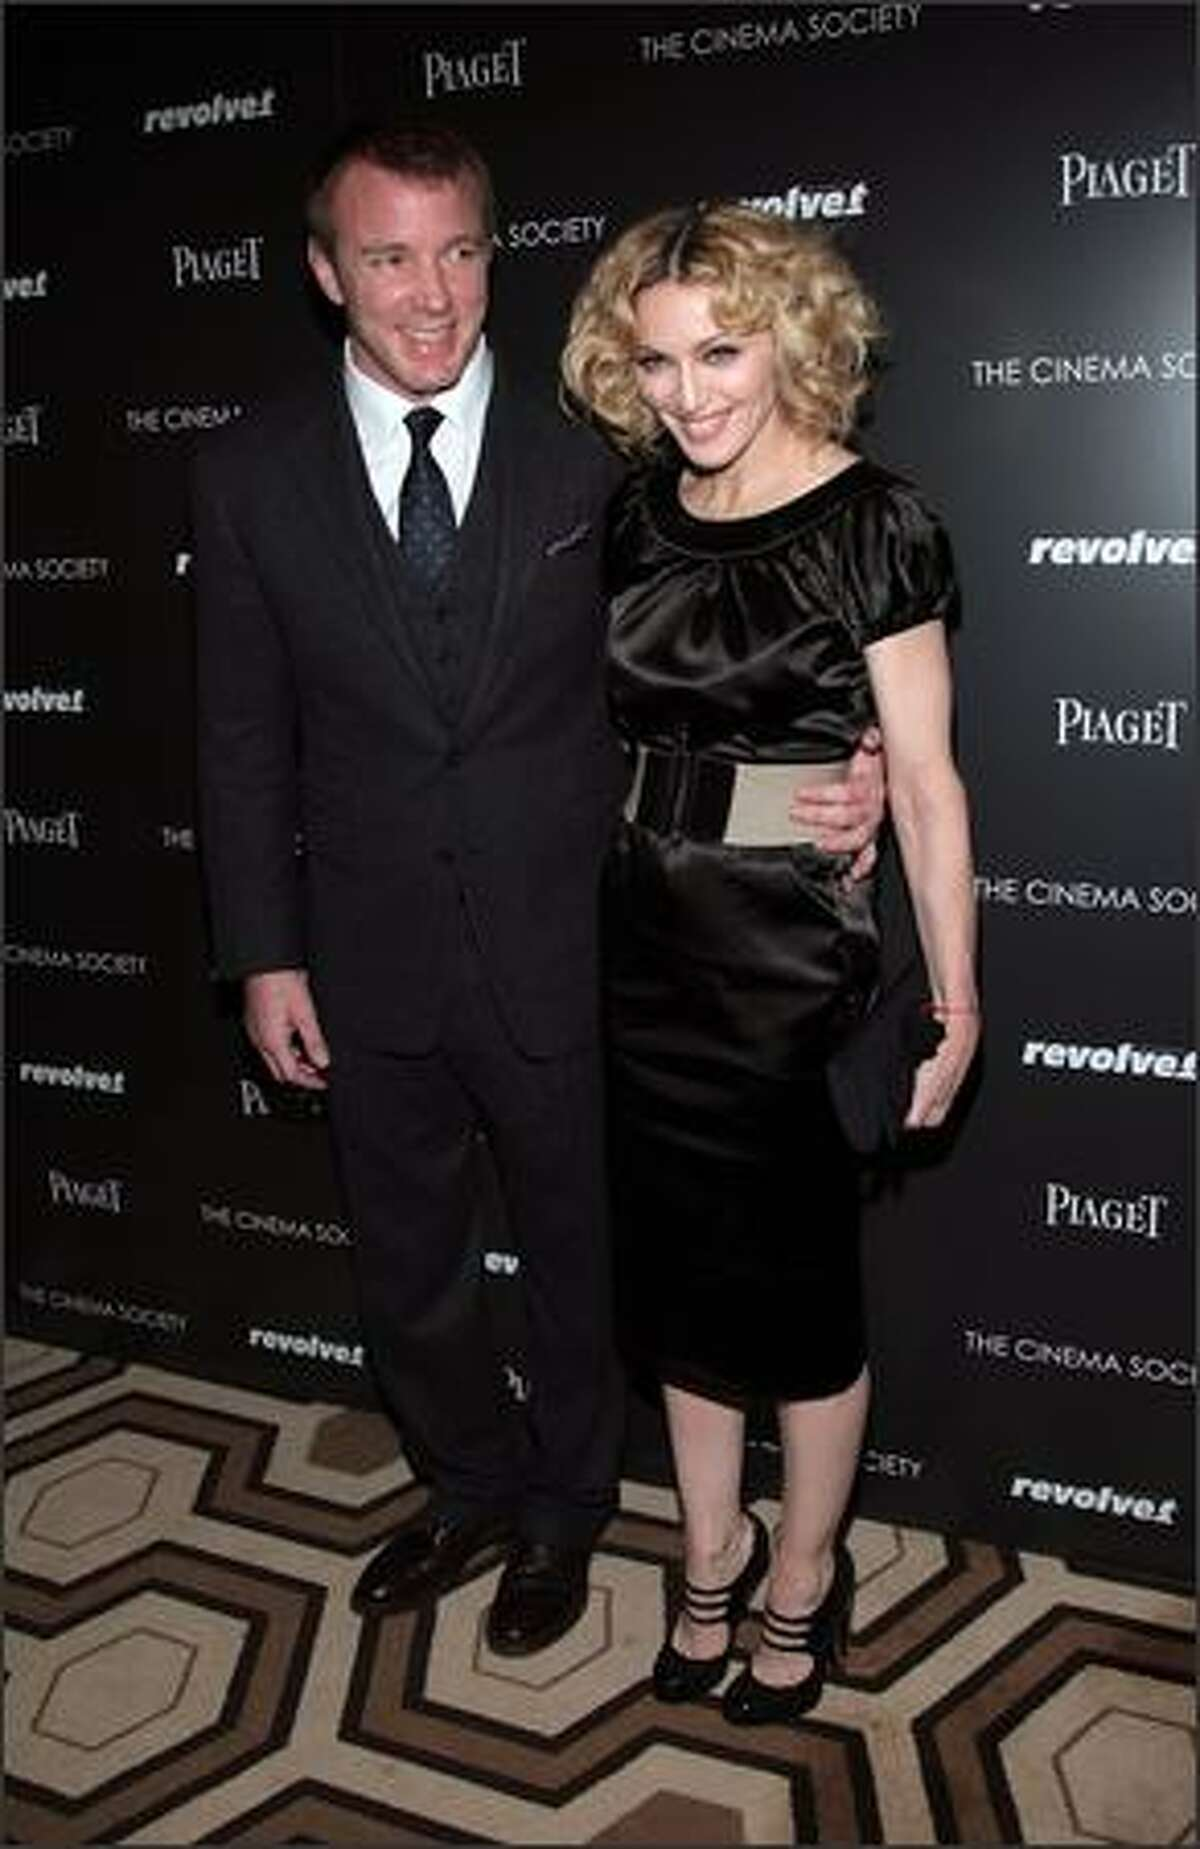 Writer/director Guy Ritchie and musician Madonna attend a screening of